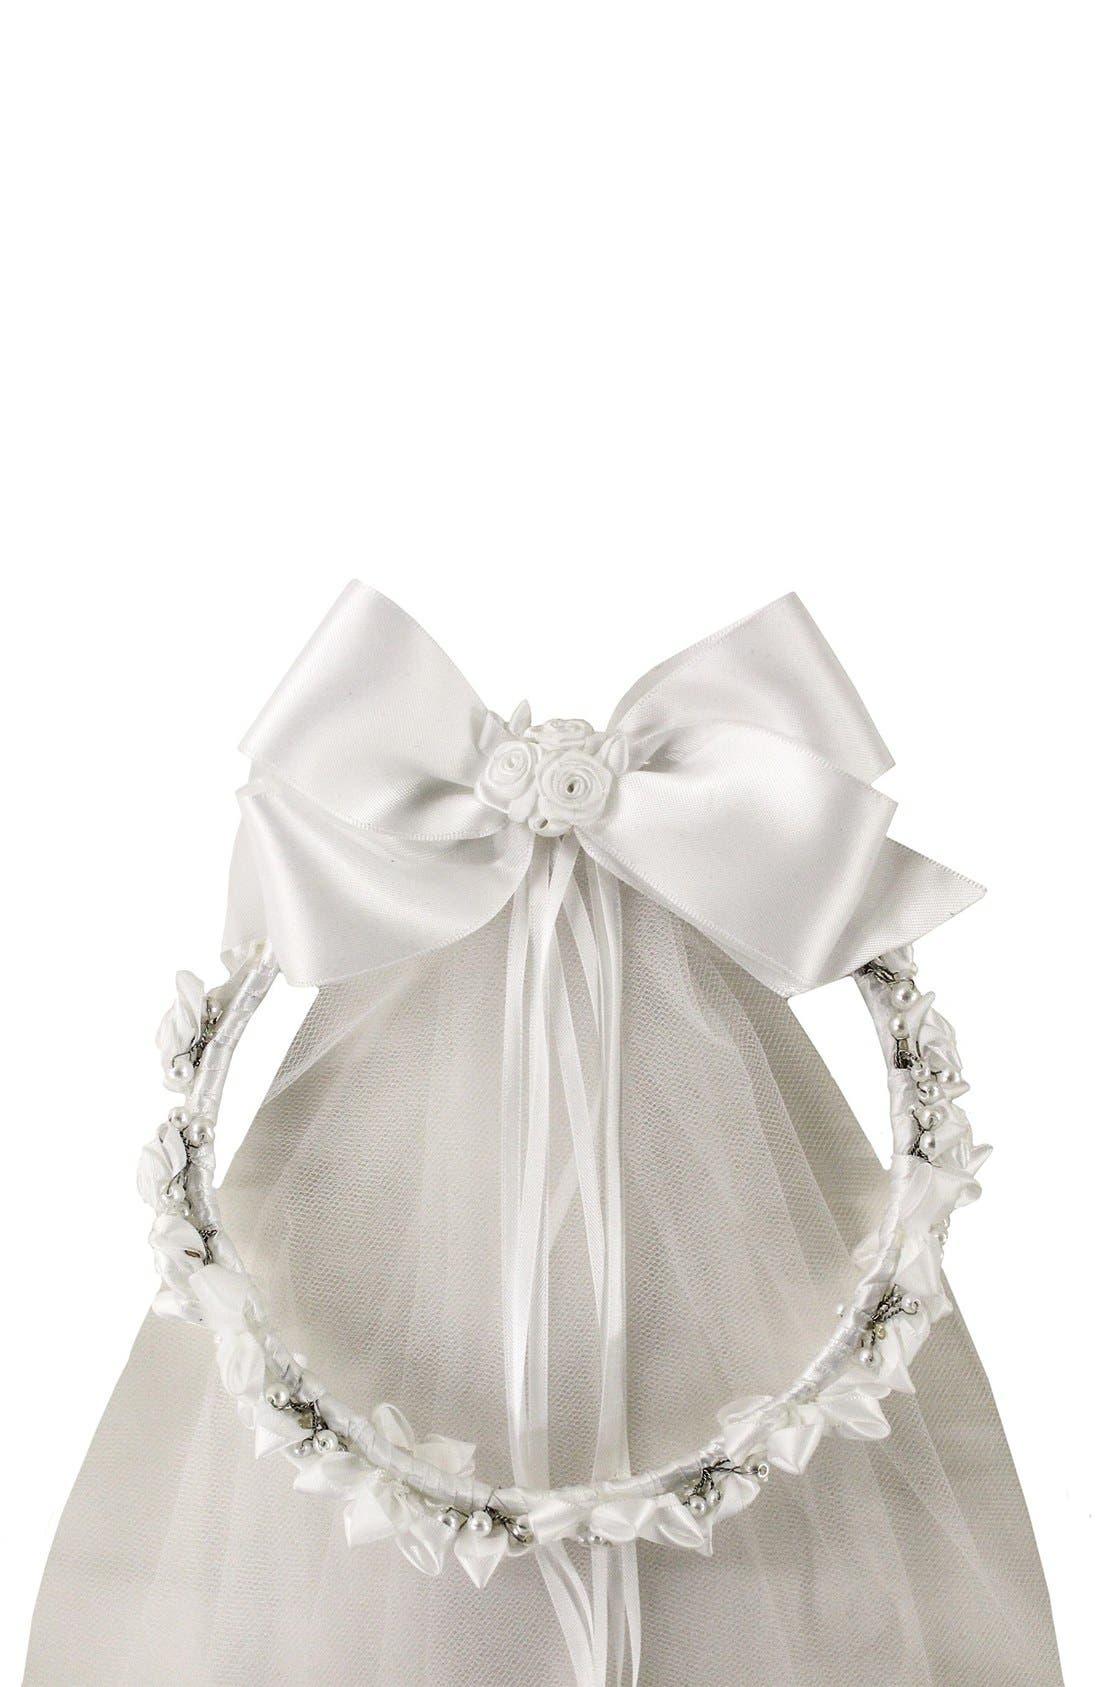 Alternate Image 1 Selected - Sorbet Communion Wreath with Removable Veil (Girls)